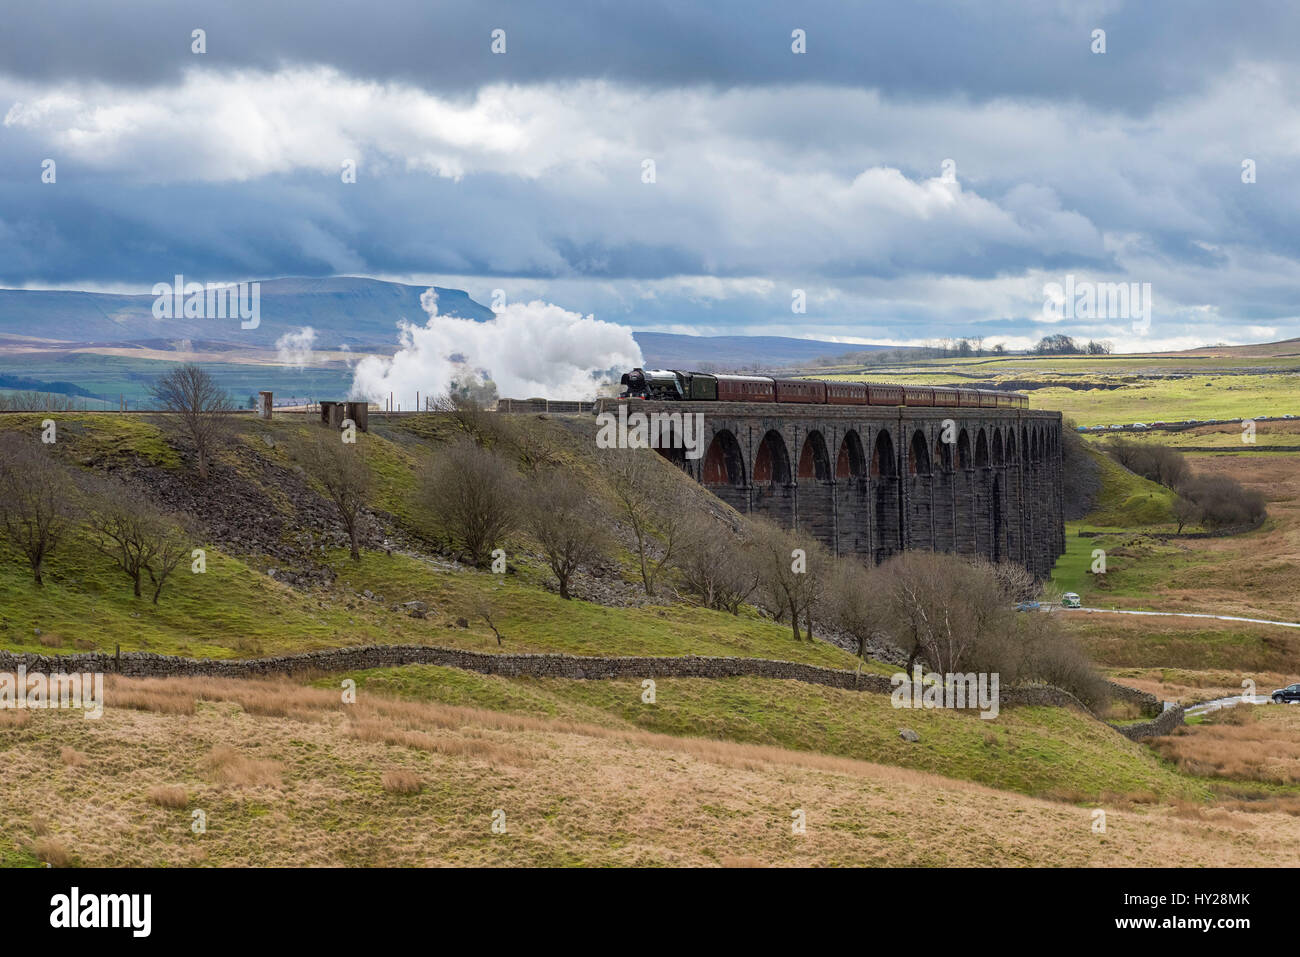 Ribblehead, North Yorkshire, UK. 31st March 2017. The iconic steam locomotive LNER class A3 60103 Flying Scotsman, - Stock Image